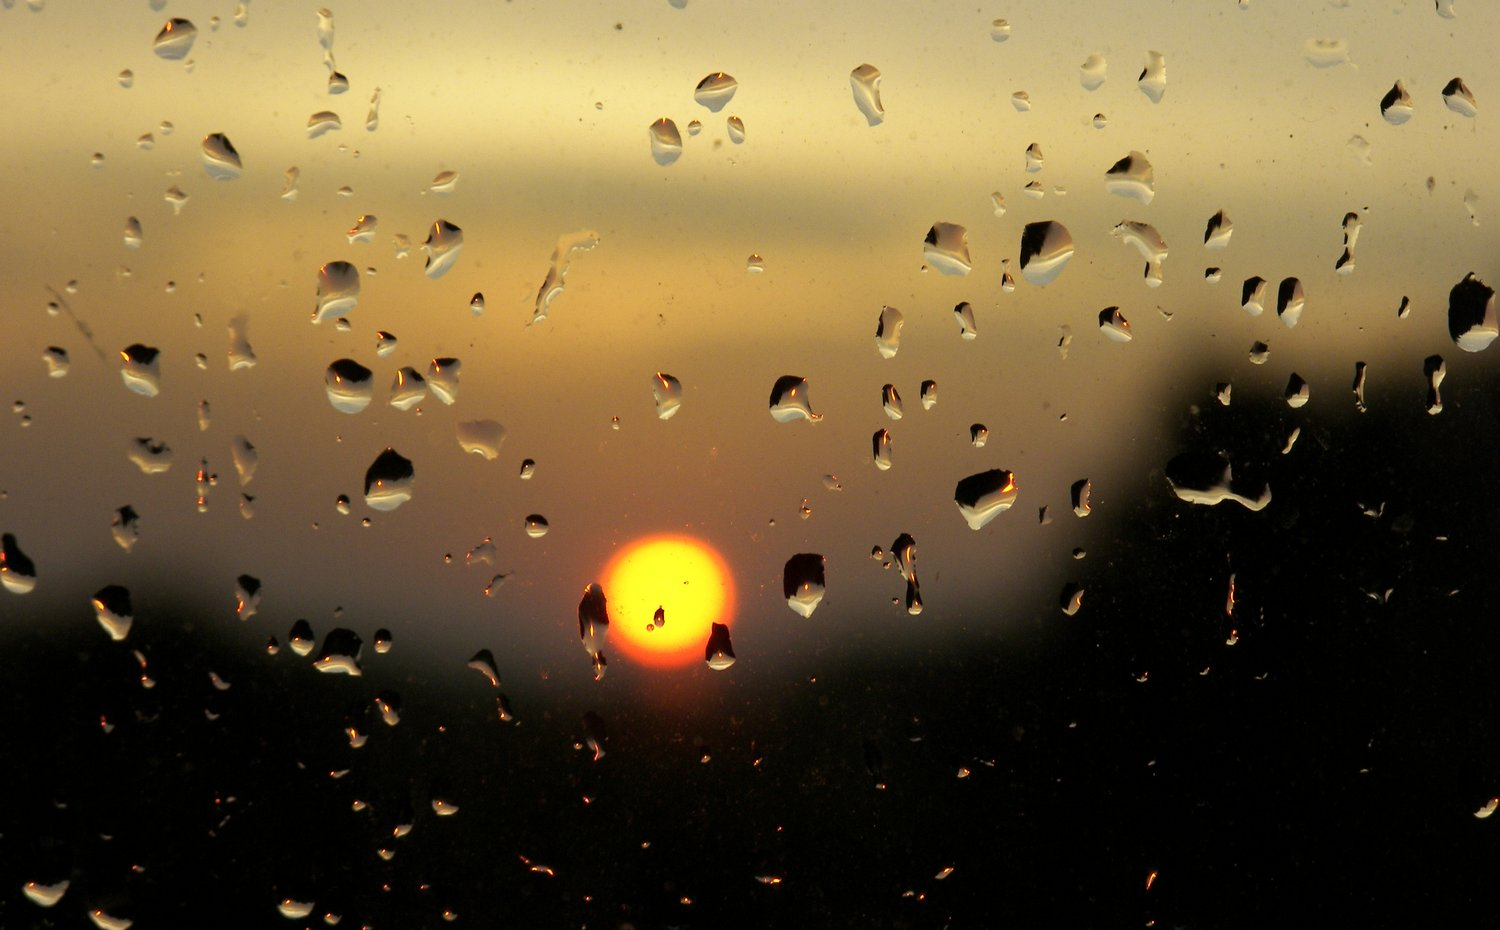 Sunset with raindrops - - Sunset with raindrops - Kodak P880 - Tony Karp, design, art, photography, techno-impressionist, techno-impressionism, aerial photography , drone , drones , dji , mavic pro , video , 3D printing - Books -